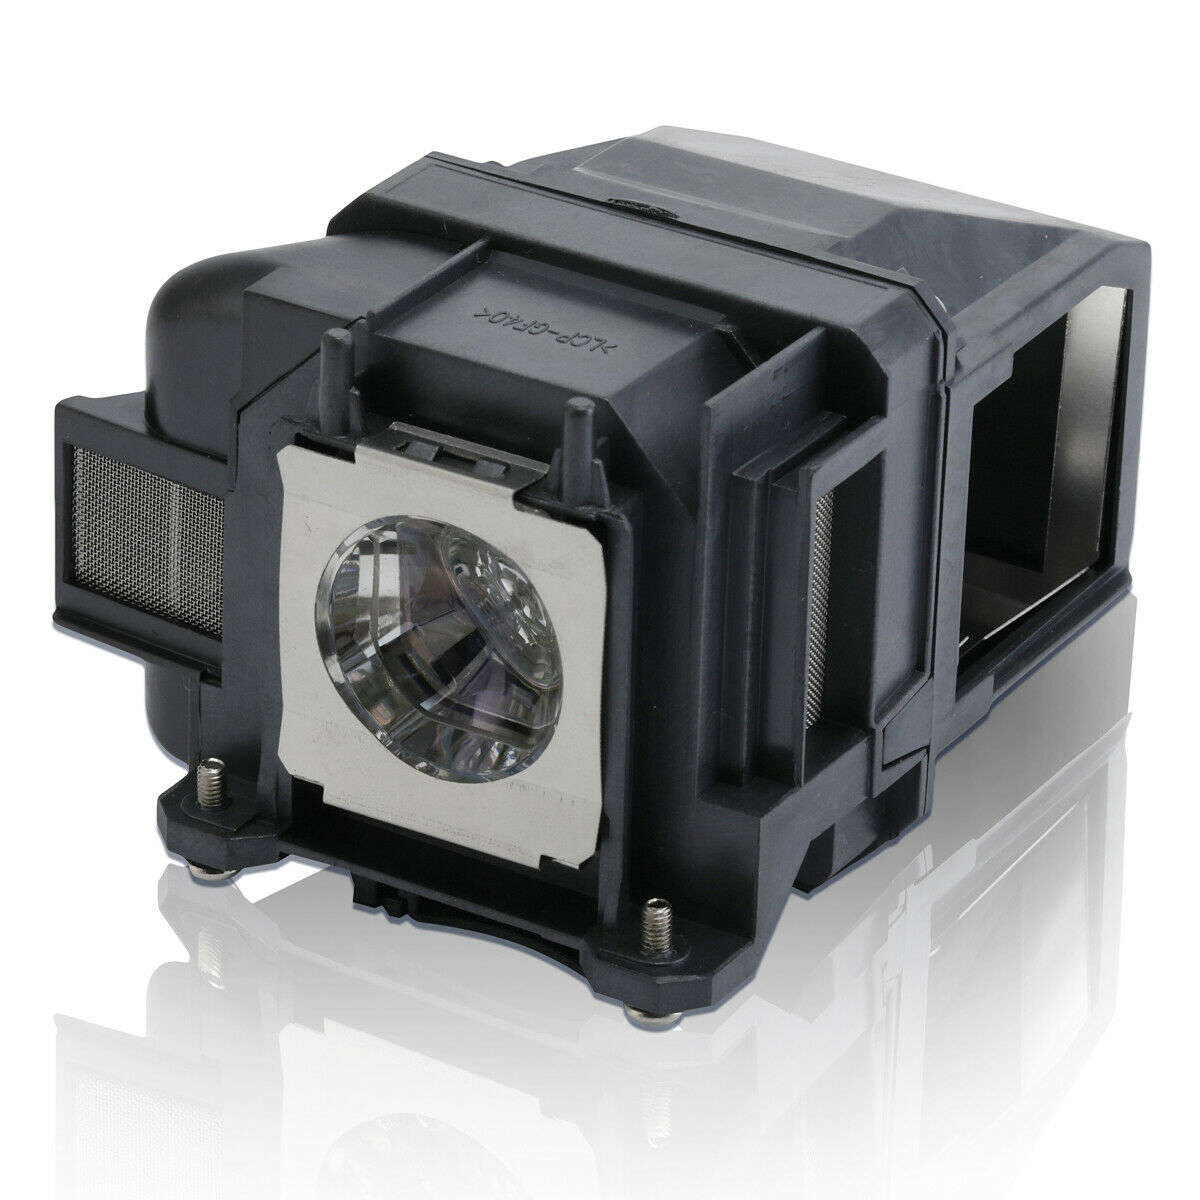 Replacement Projector Lamp For Epson Elplp78 Powerlite Home Cinema Eh Tw570 Theatre 2030 600 1 Of 6free Shipping